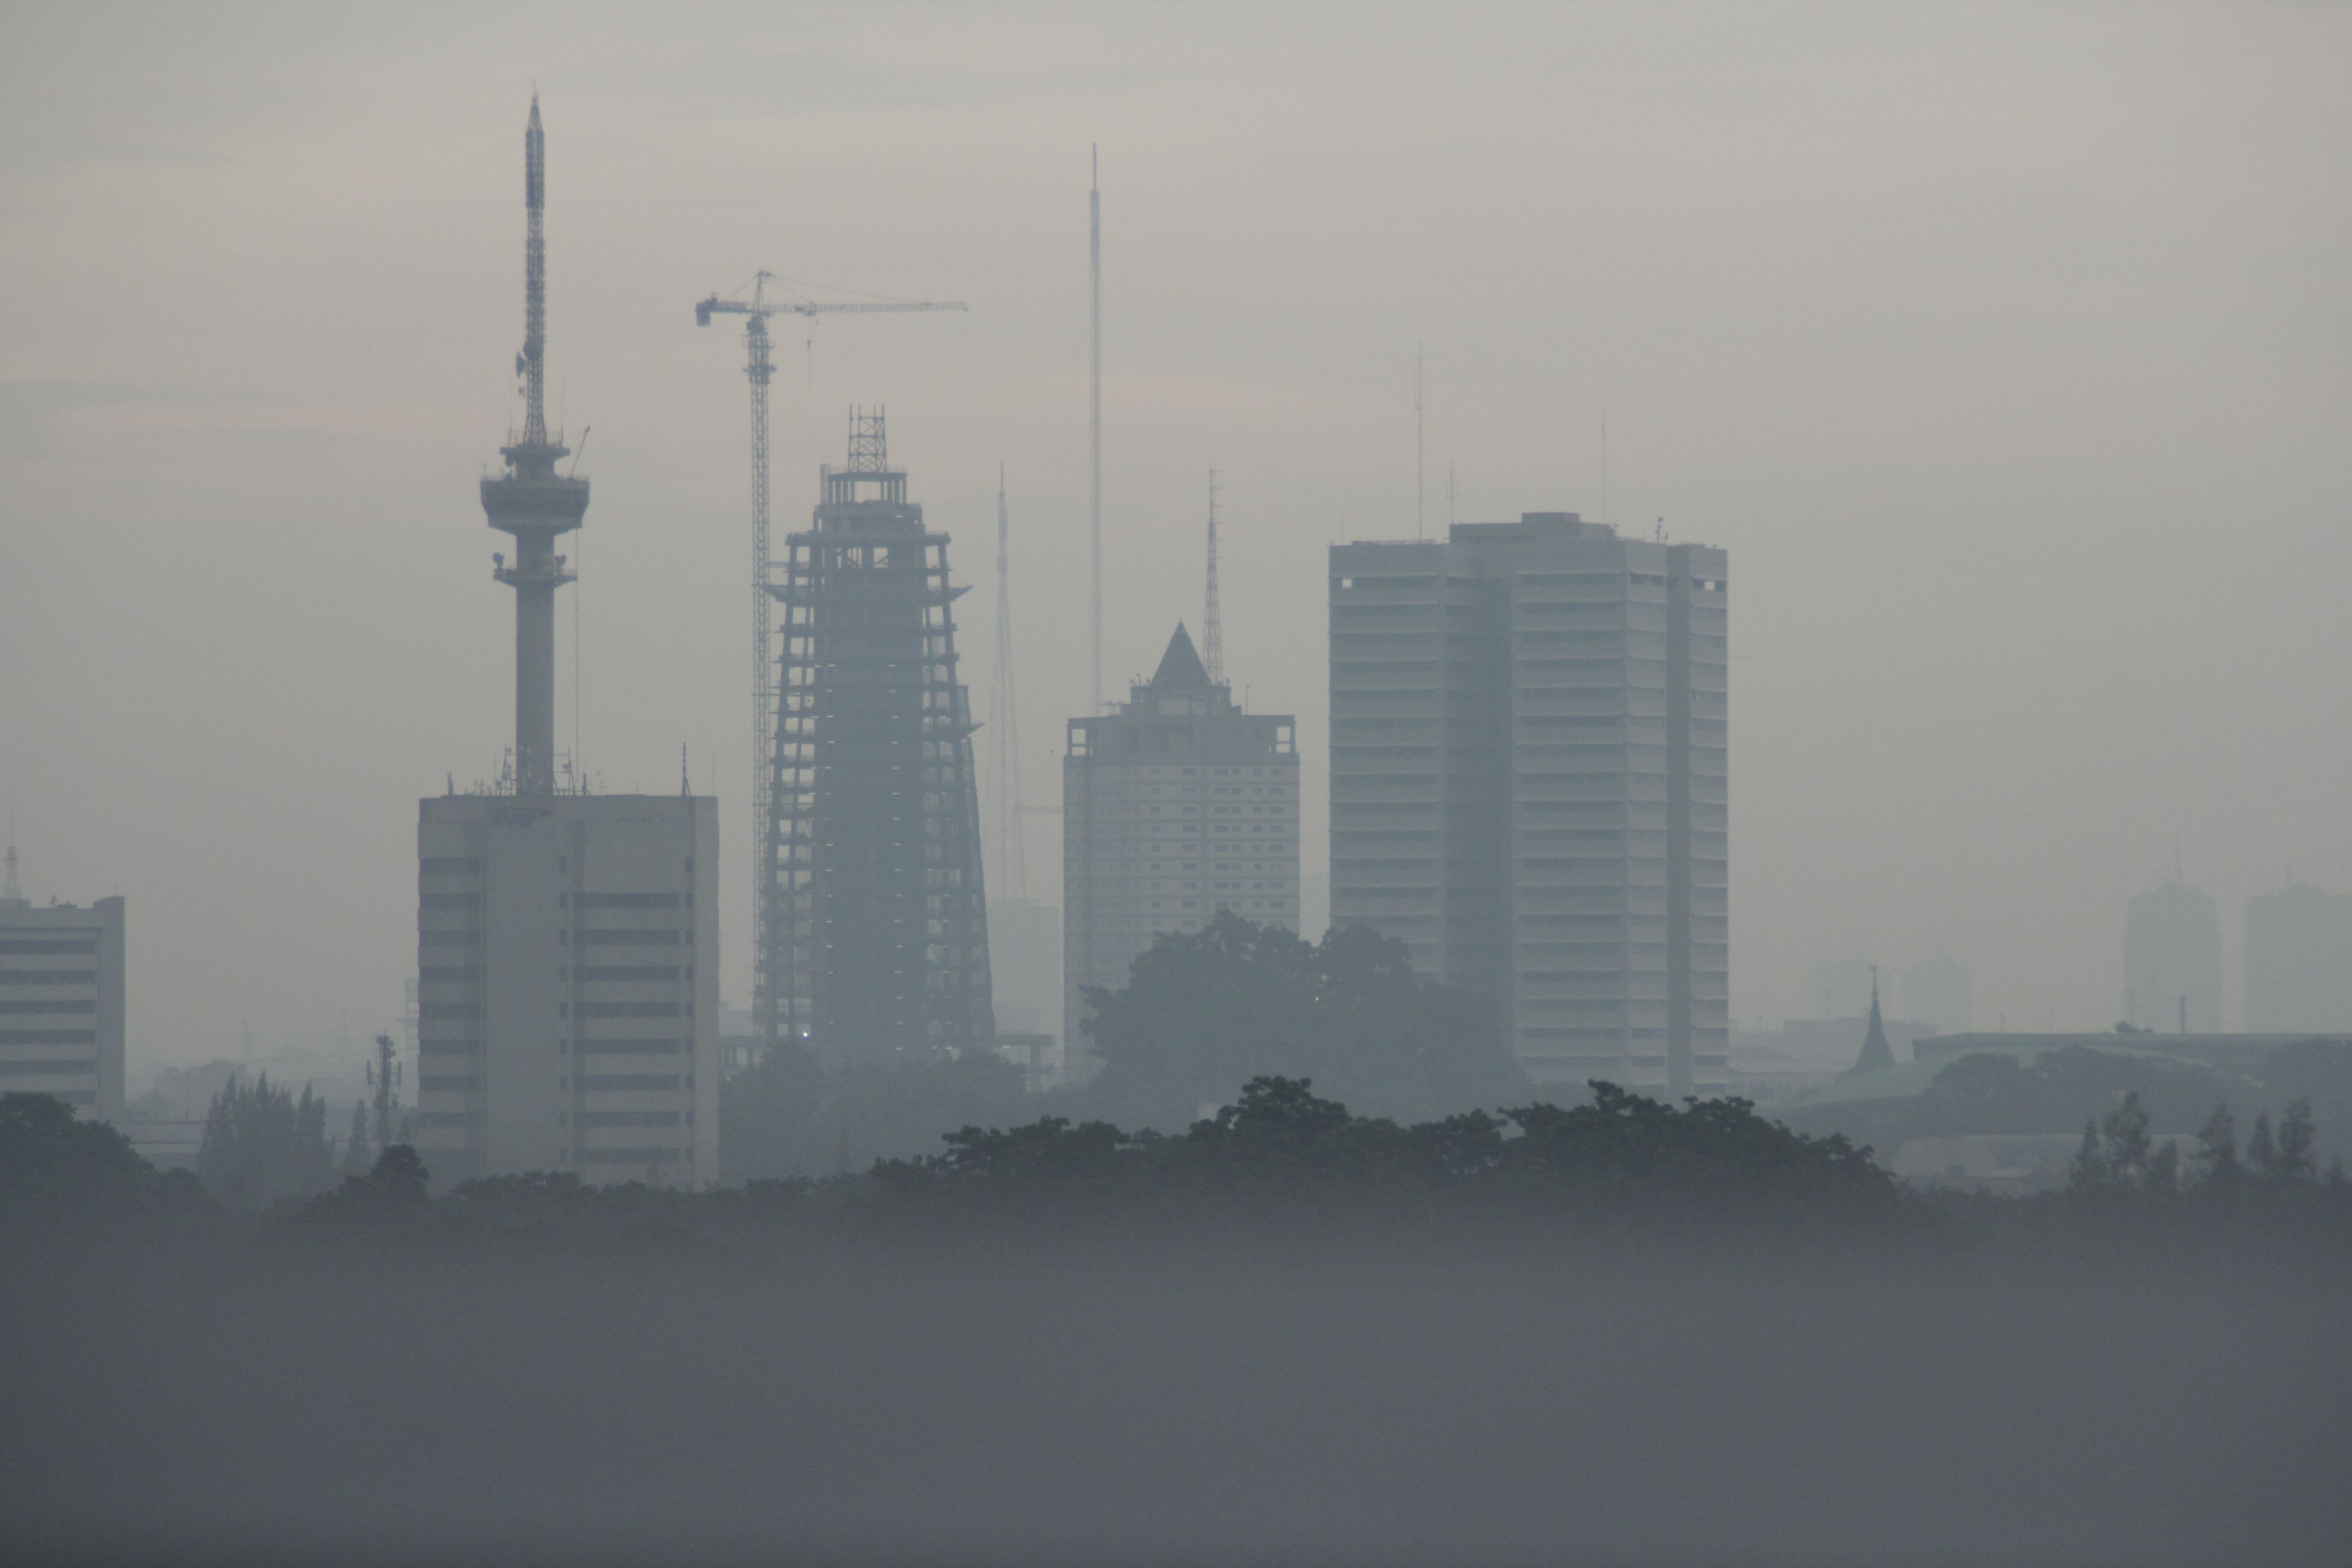 building exterior, architecture, built structure, city, tall - high, tower, skyscraper, sky, fog, cityscape, foggy, copy space, development, outdoors, no people, urban skyline, day, building, tree